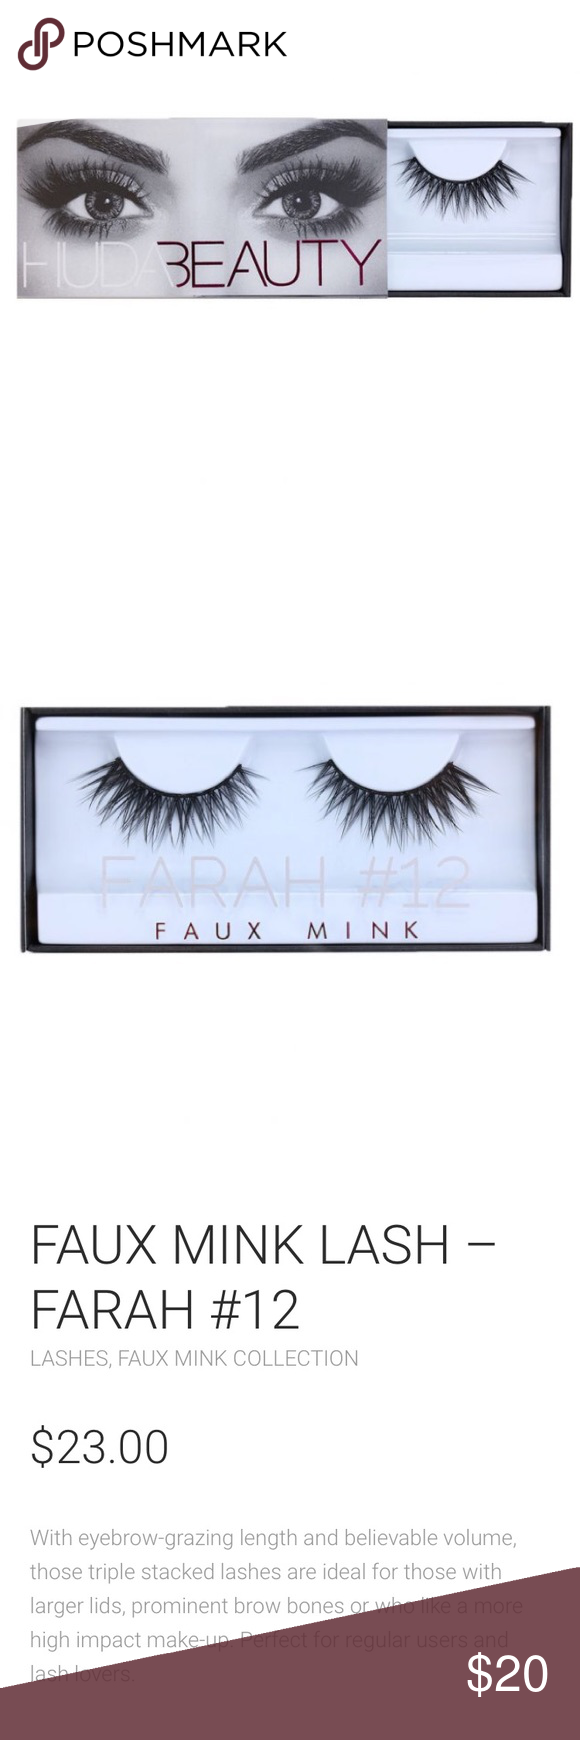 c444e2b136f NWT HUDA BEAUTY FARAH #12 FAUX MINK LASHES New in box, free gift with every  purchase ❤ Sephora Makeup False Eyelashes